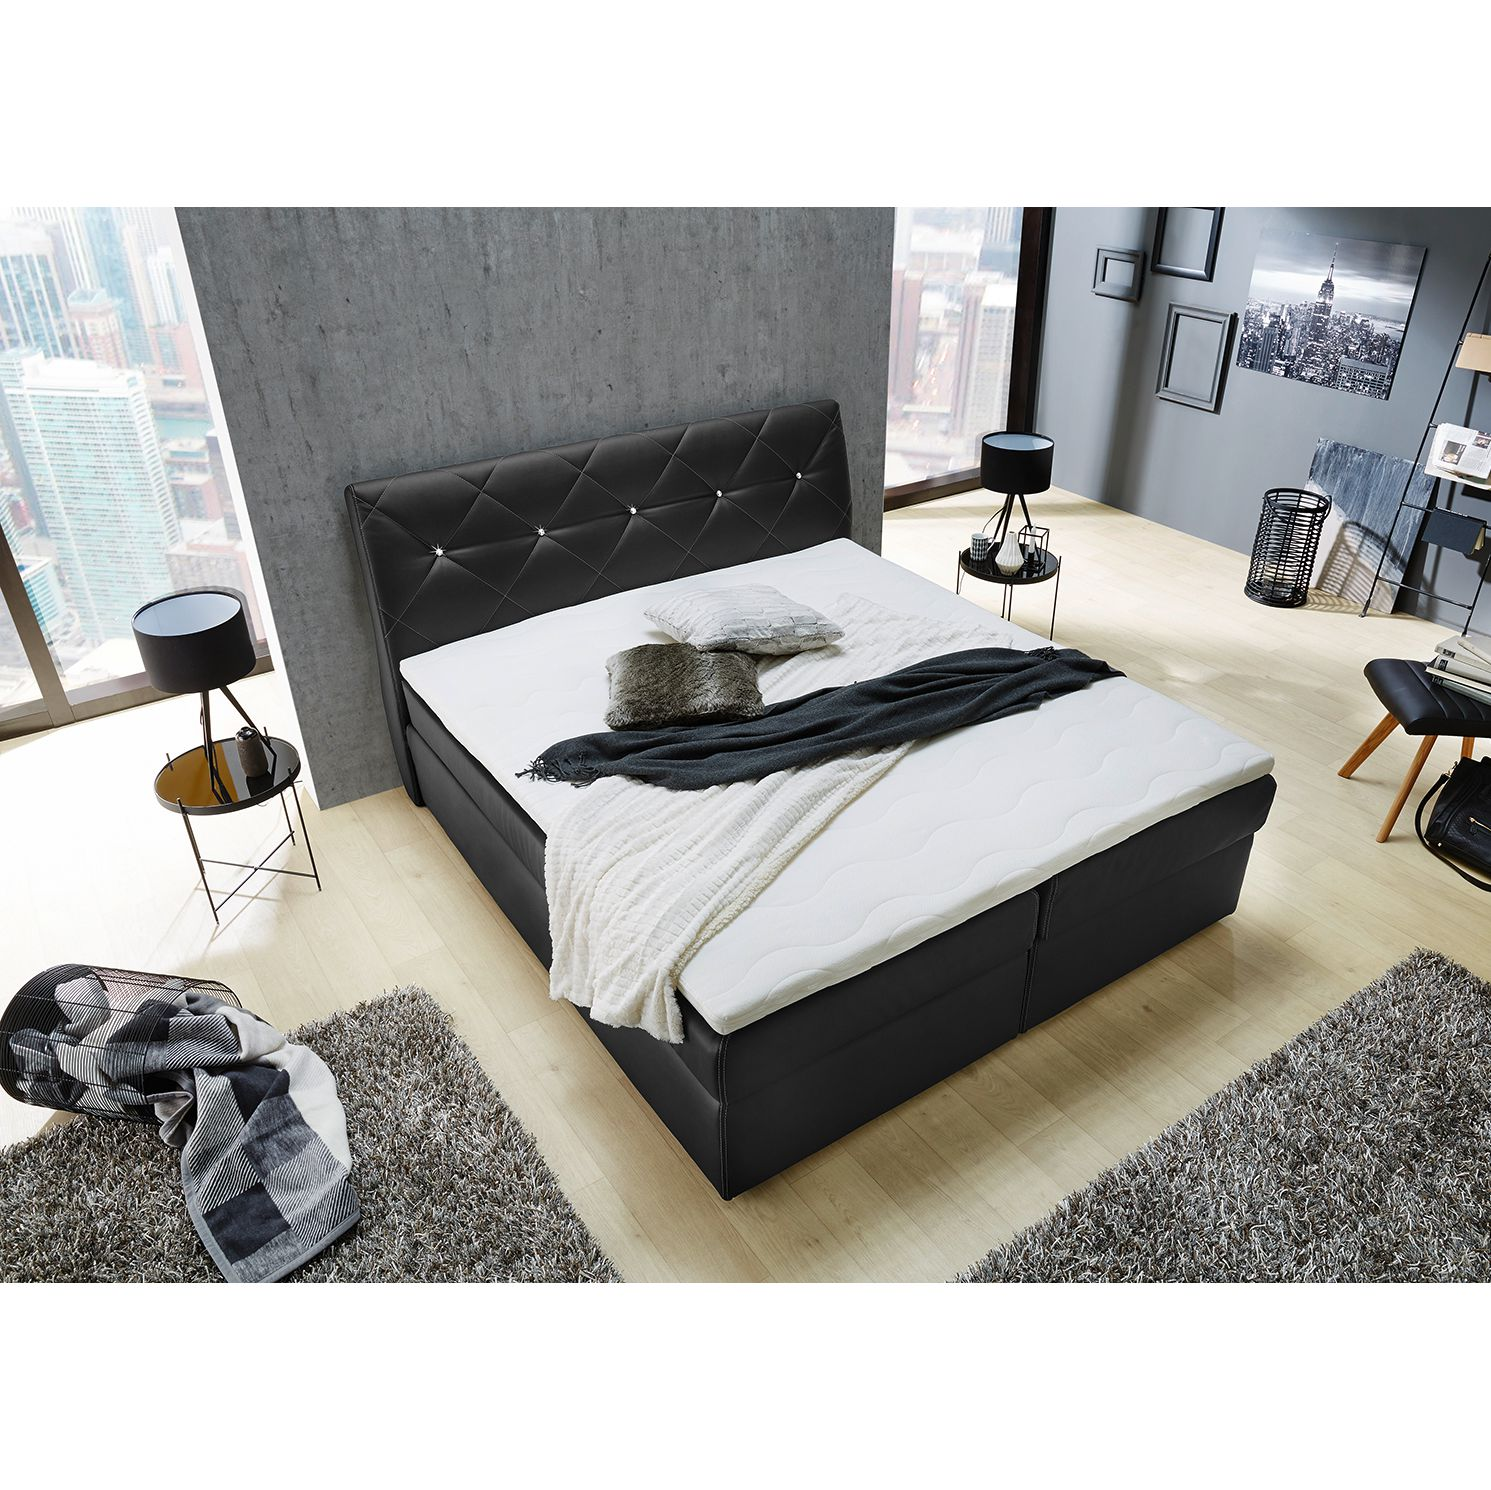 23 sparen boxspringbett laholm nur 999 99 cherry m bel home24. Black Bedroom Furniture Sets. Home Design Ideas